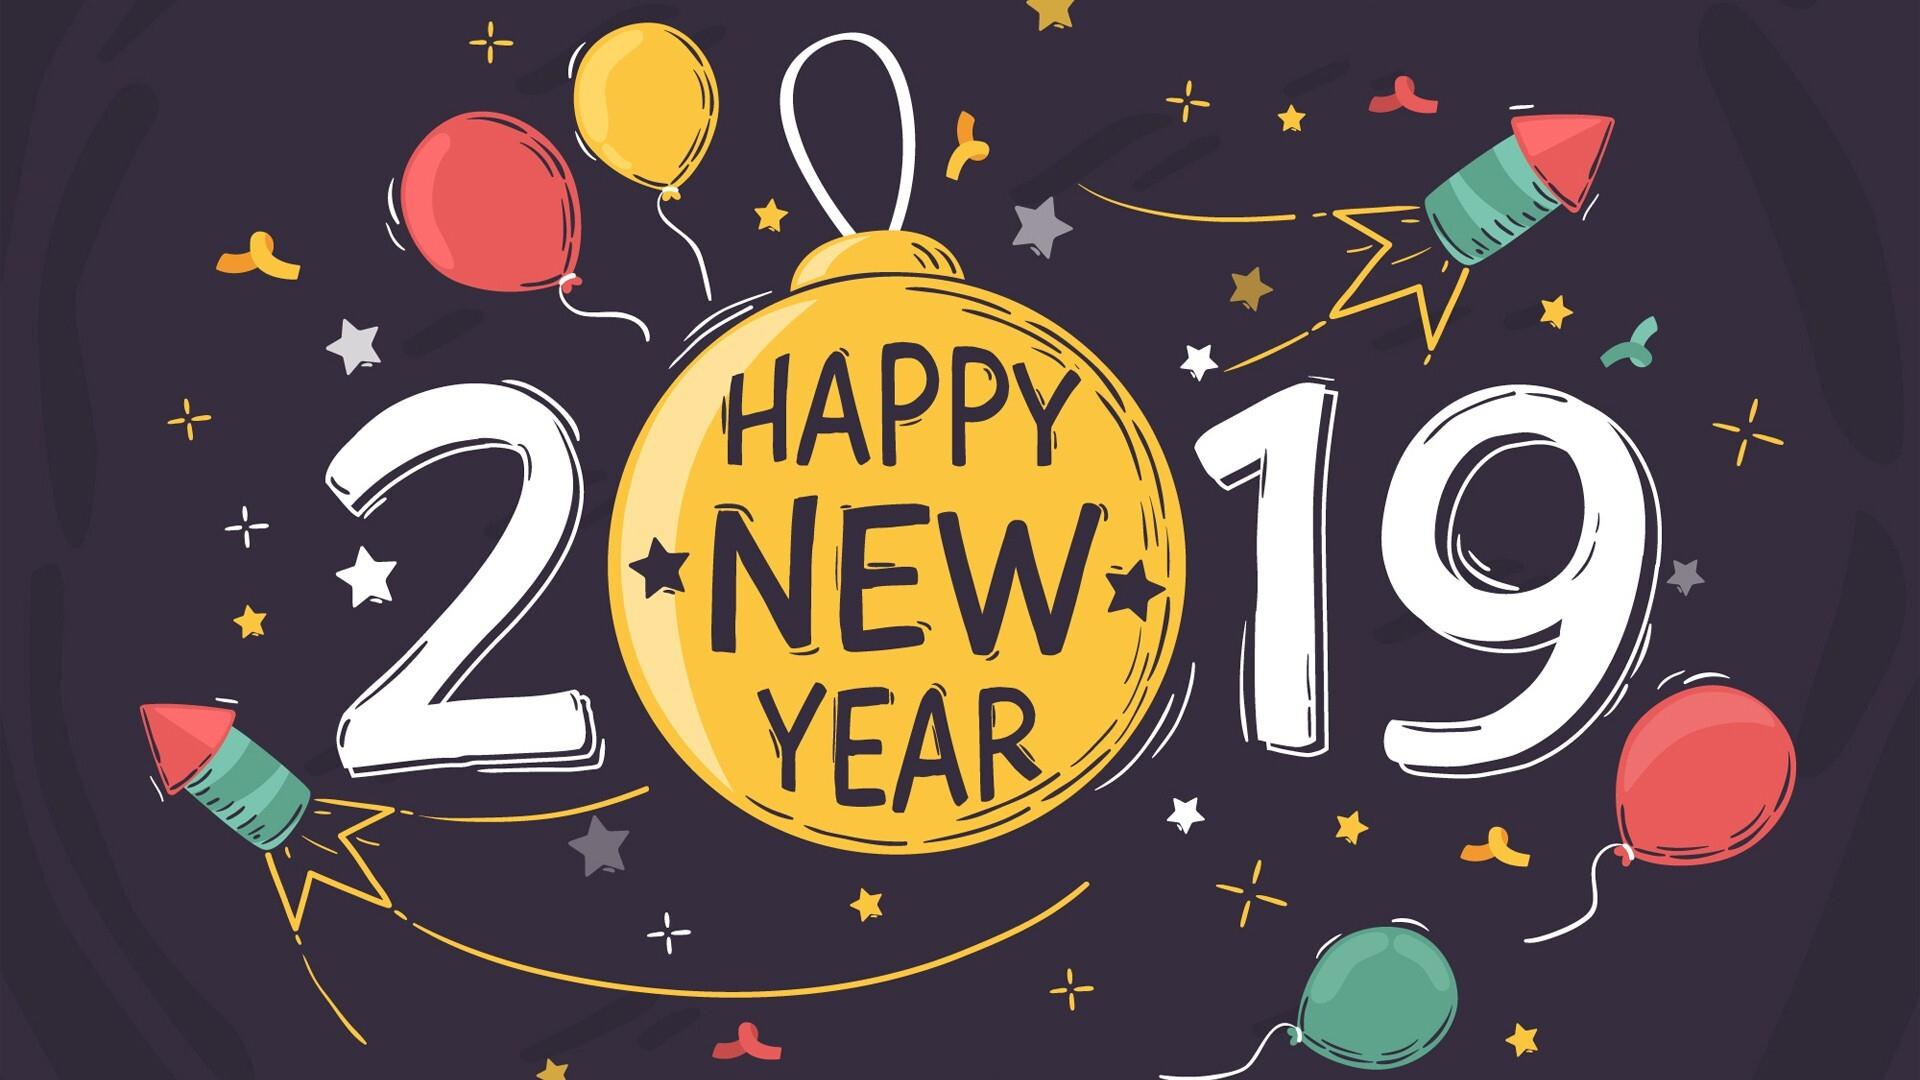 1920x1080 New Year 2019 HD Images